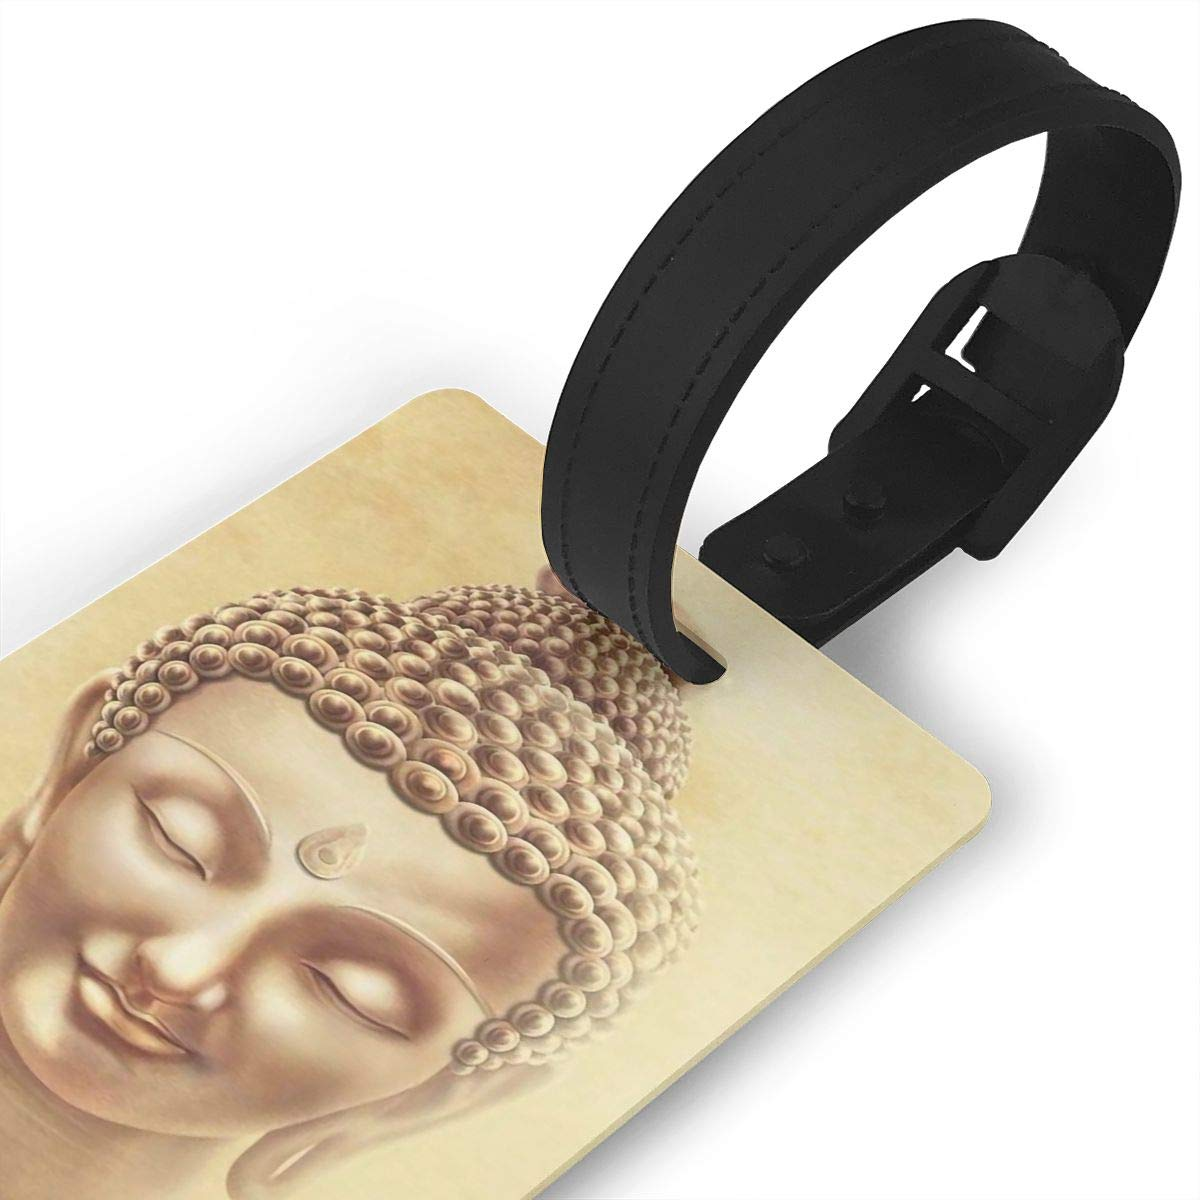 2 Pack Luggage Tags Buddhism Cruise Luggage Tag For Suitcase Bag Accessories